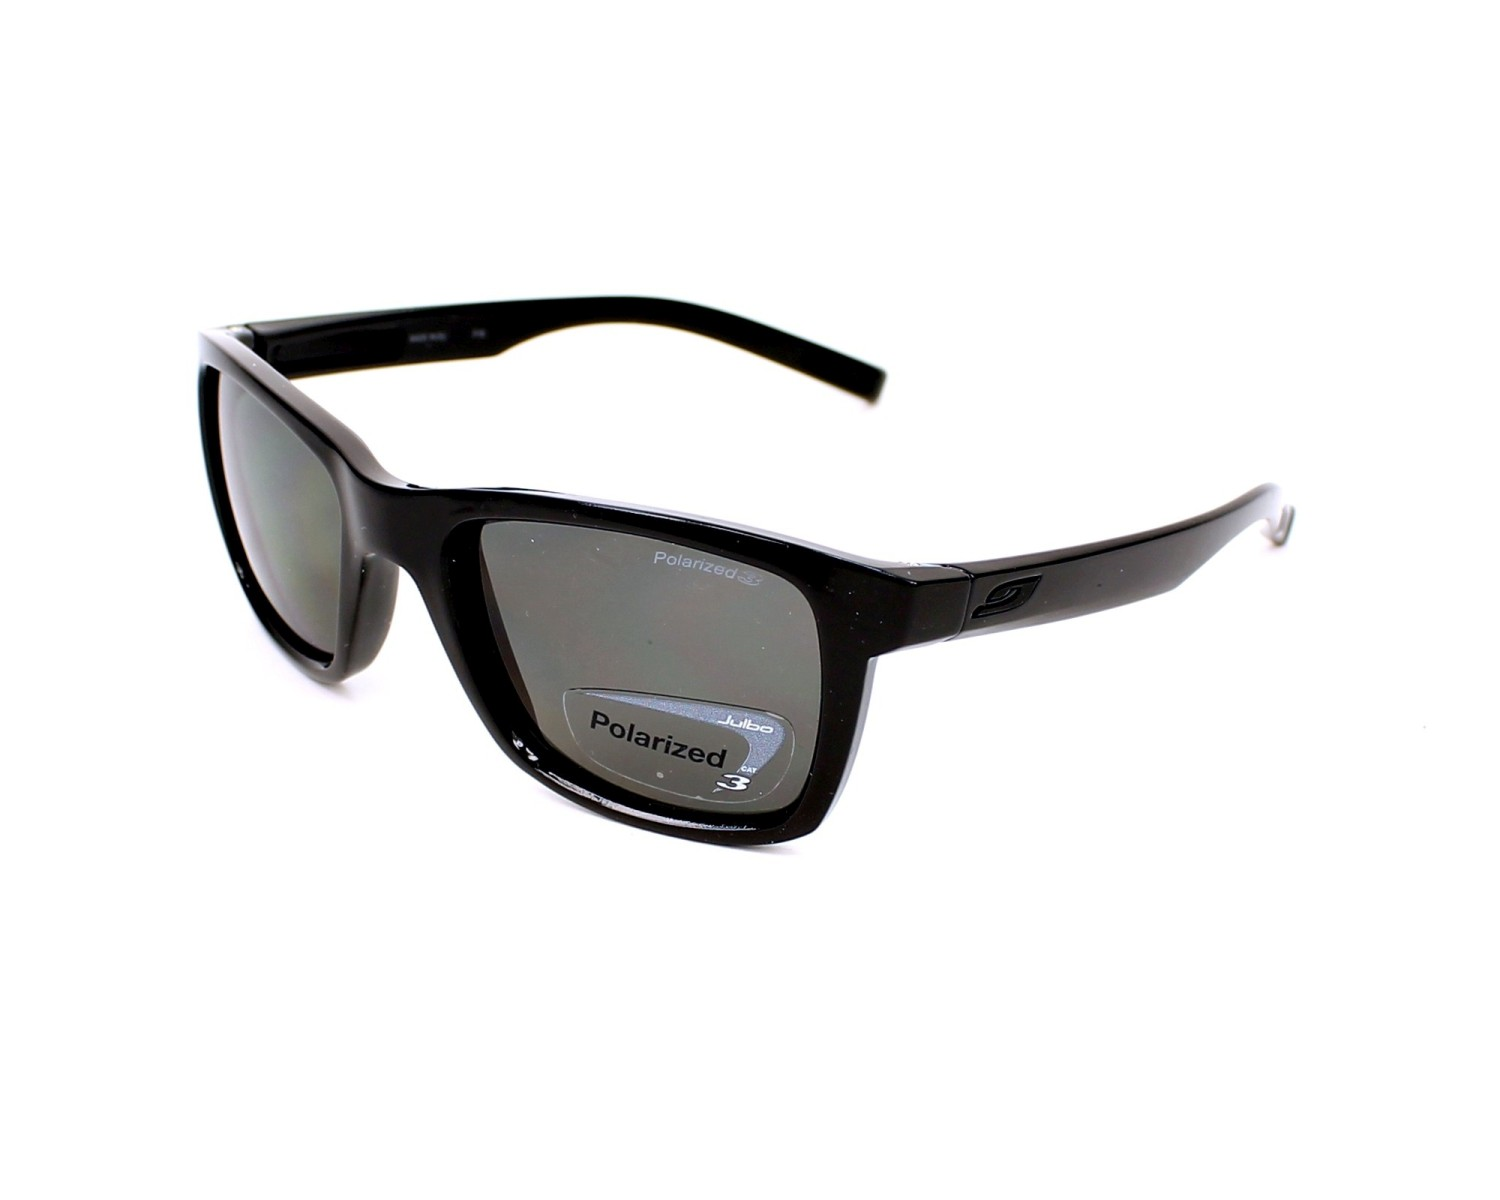 f41a027f7f Polarized. Sunglasses Julbo J477 9014 50-19 Black profile view